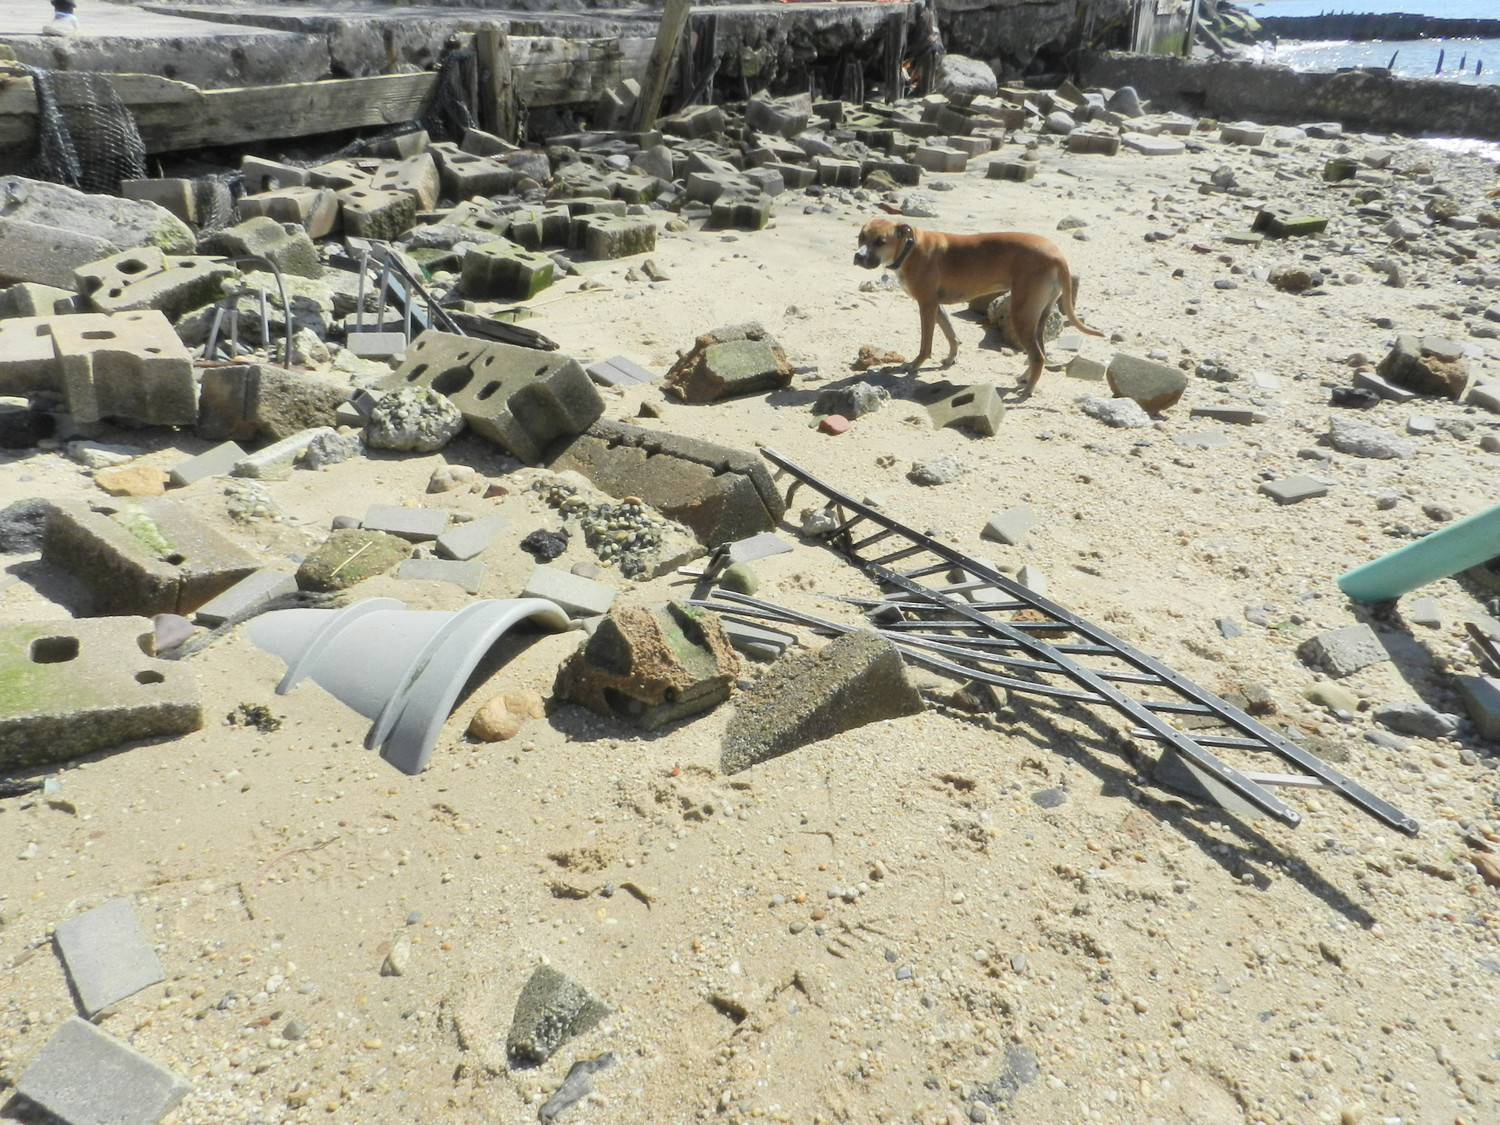 Lee's dog, Juno, inspected concrete cinderblocks and a piece of metal fencing on the beach, which fell from the retaining sea wall above.